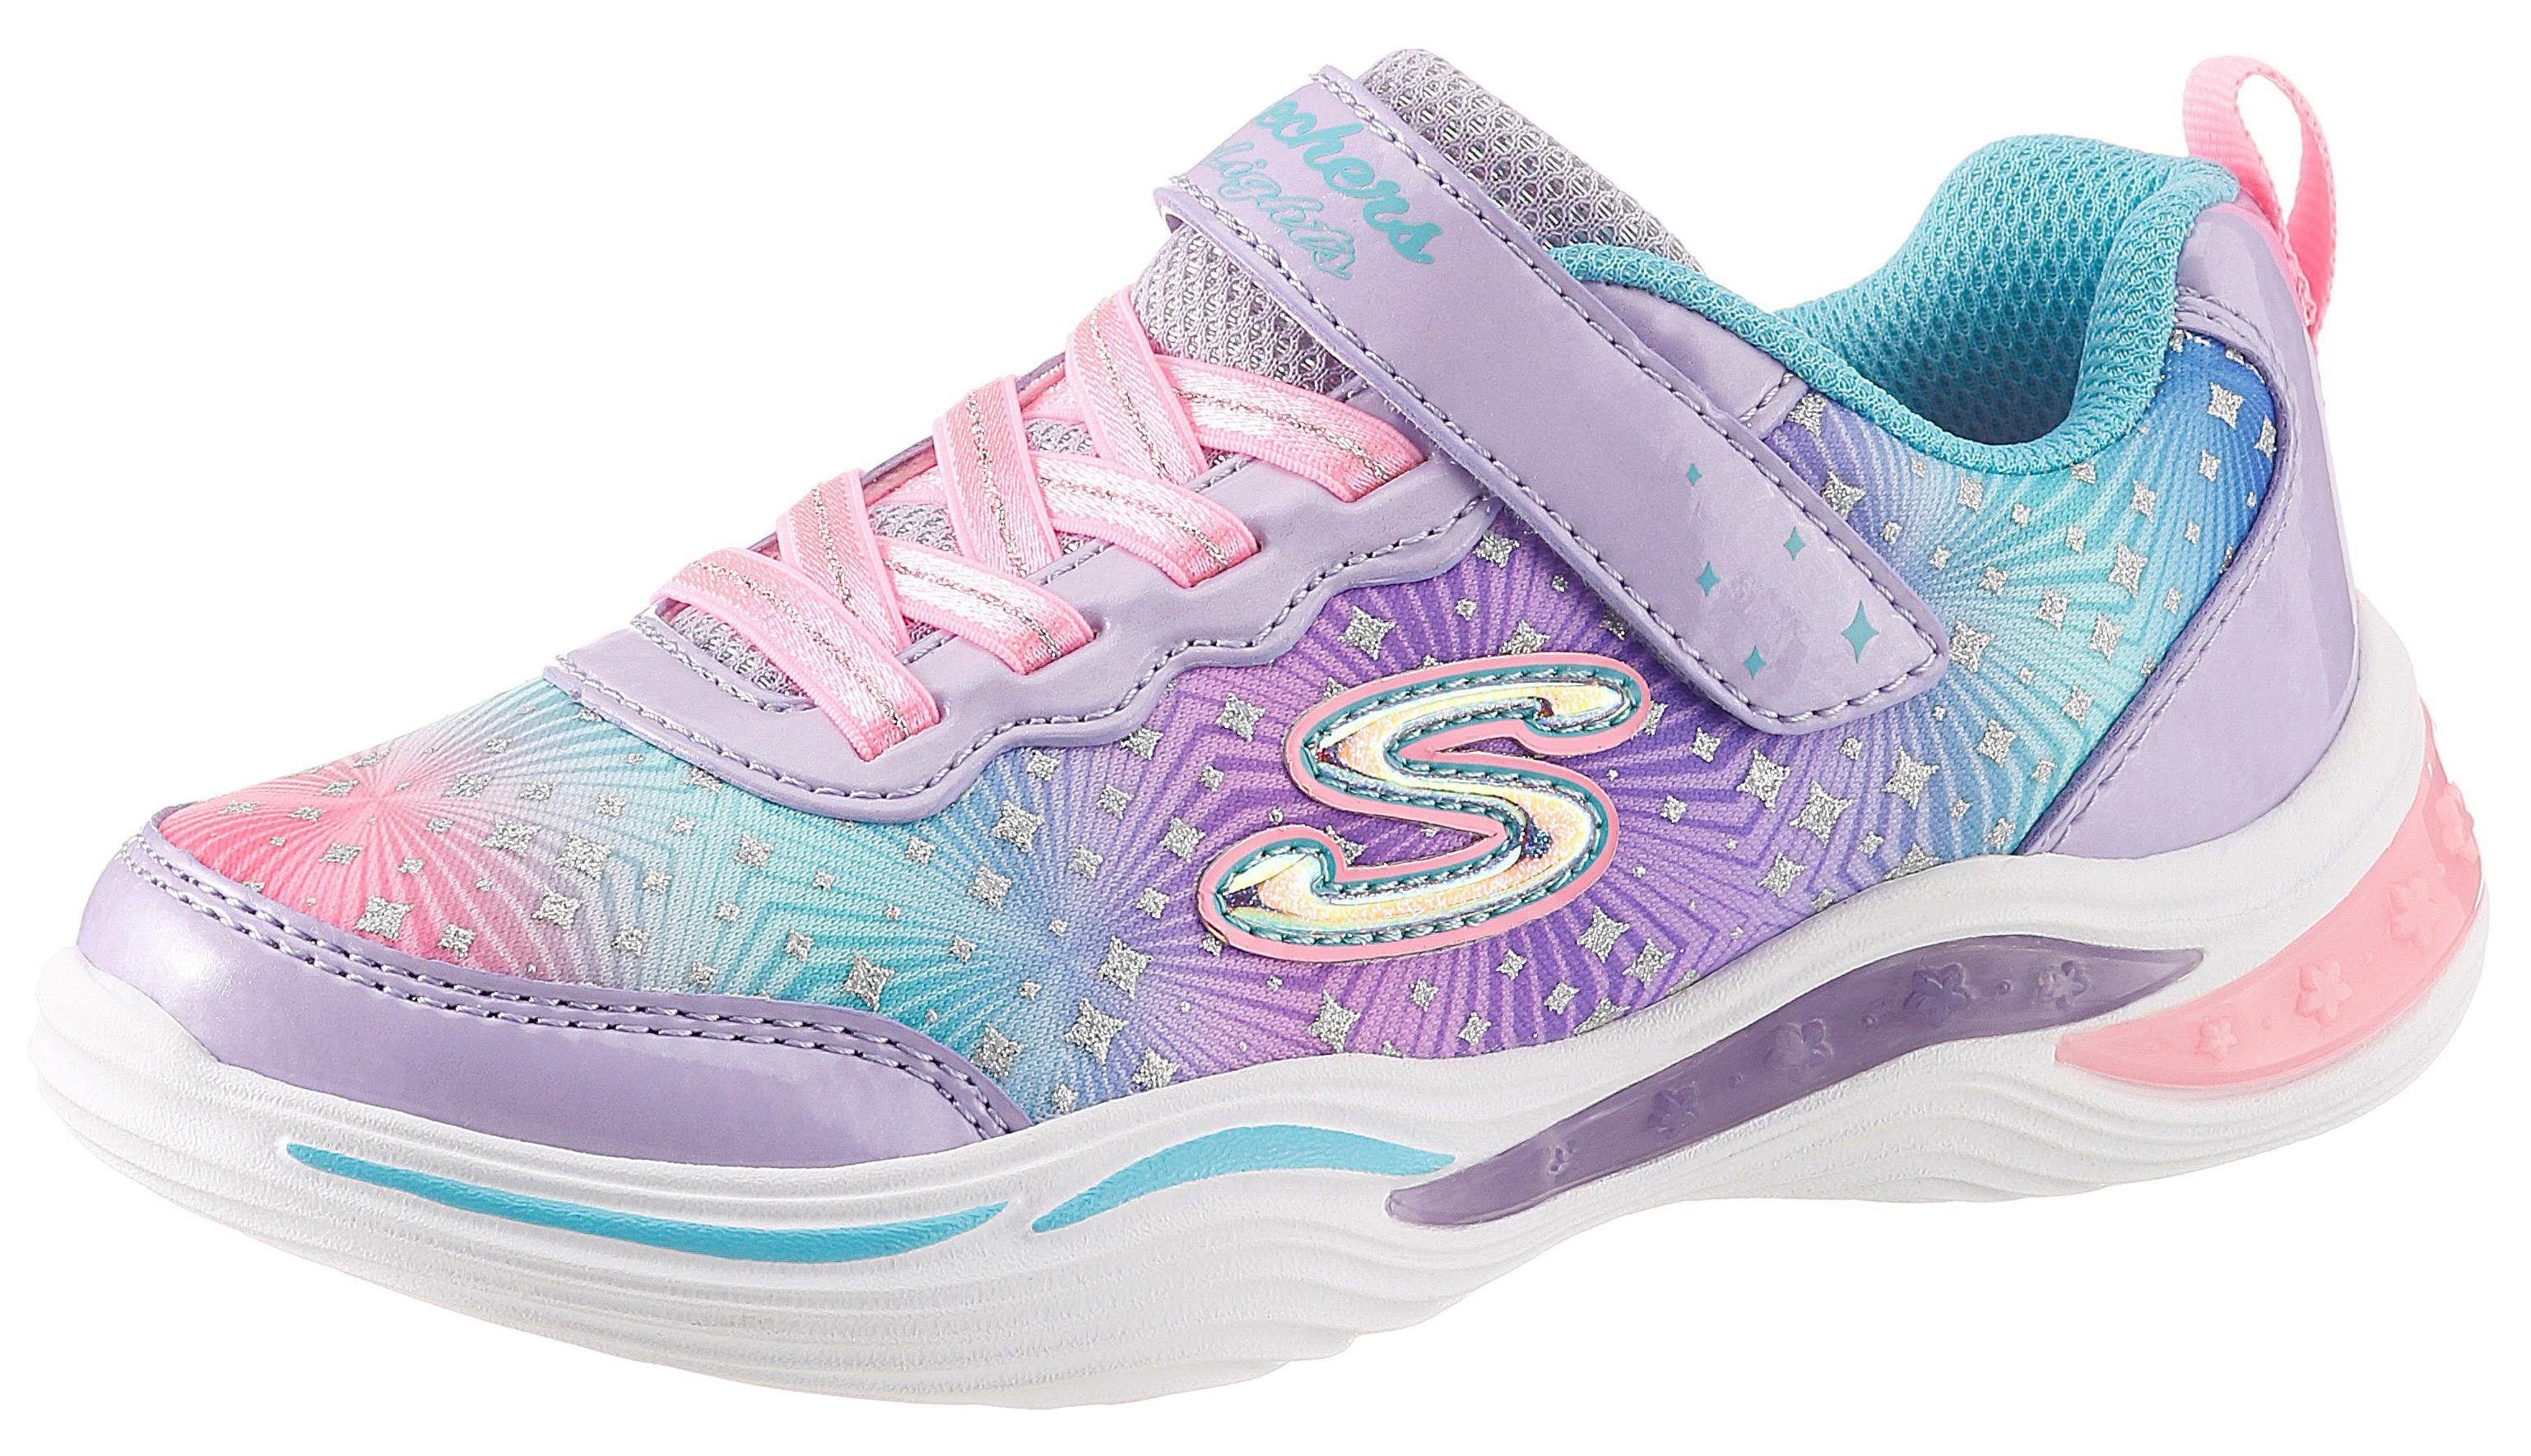 Skechers Kids »Power Petals« Sneaker mit cooler Blinkfunktion online kaufen | OTTO